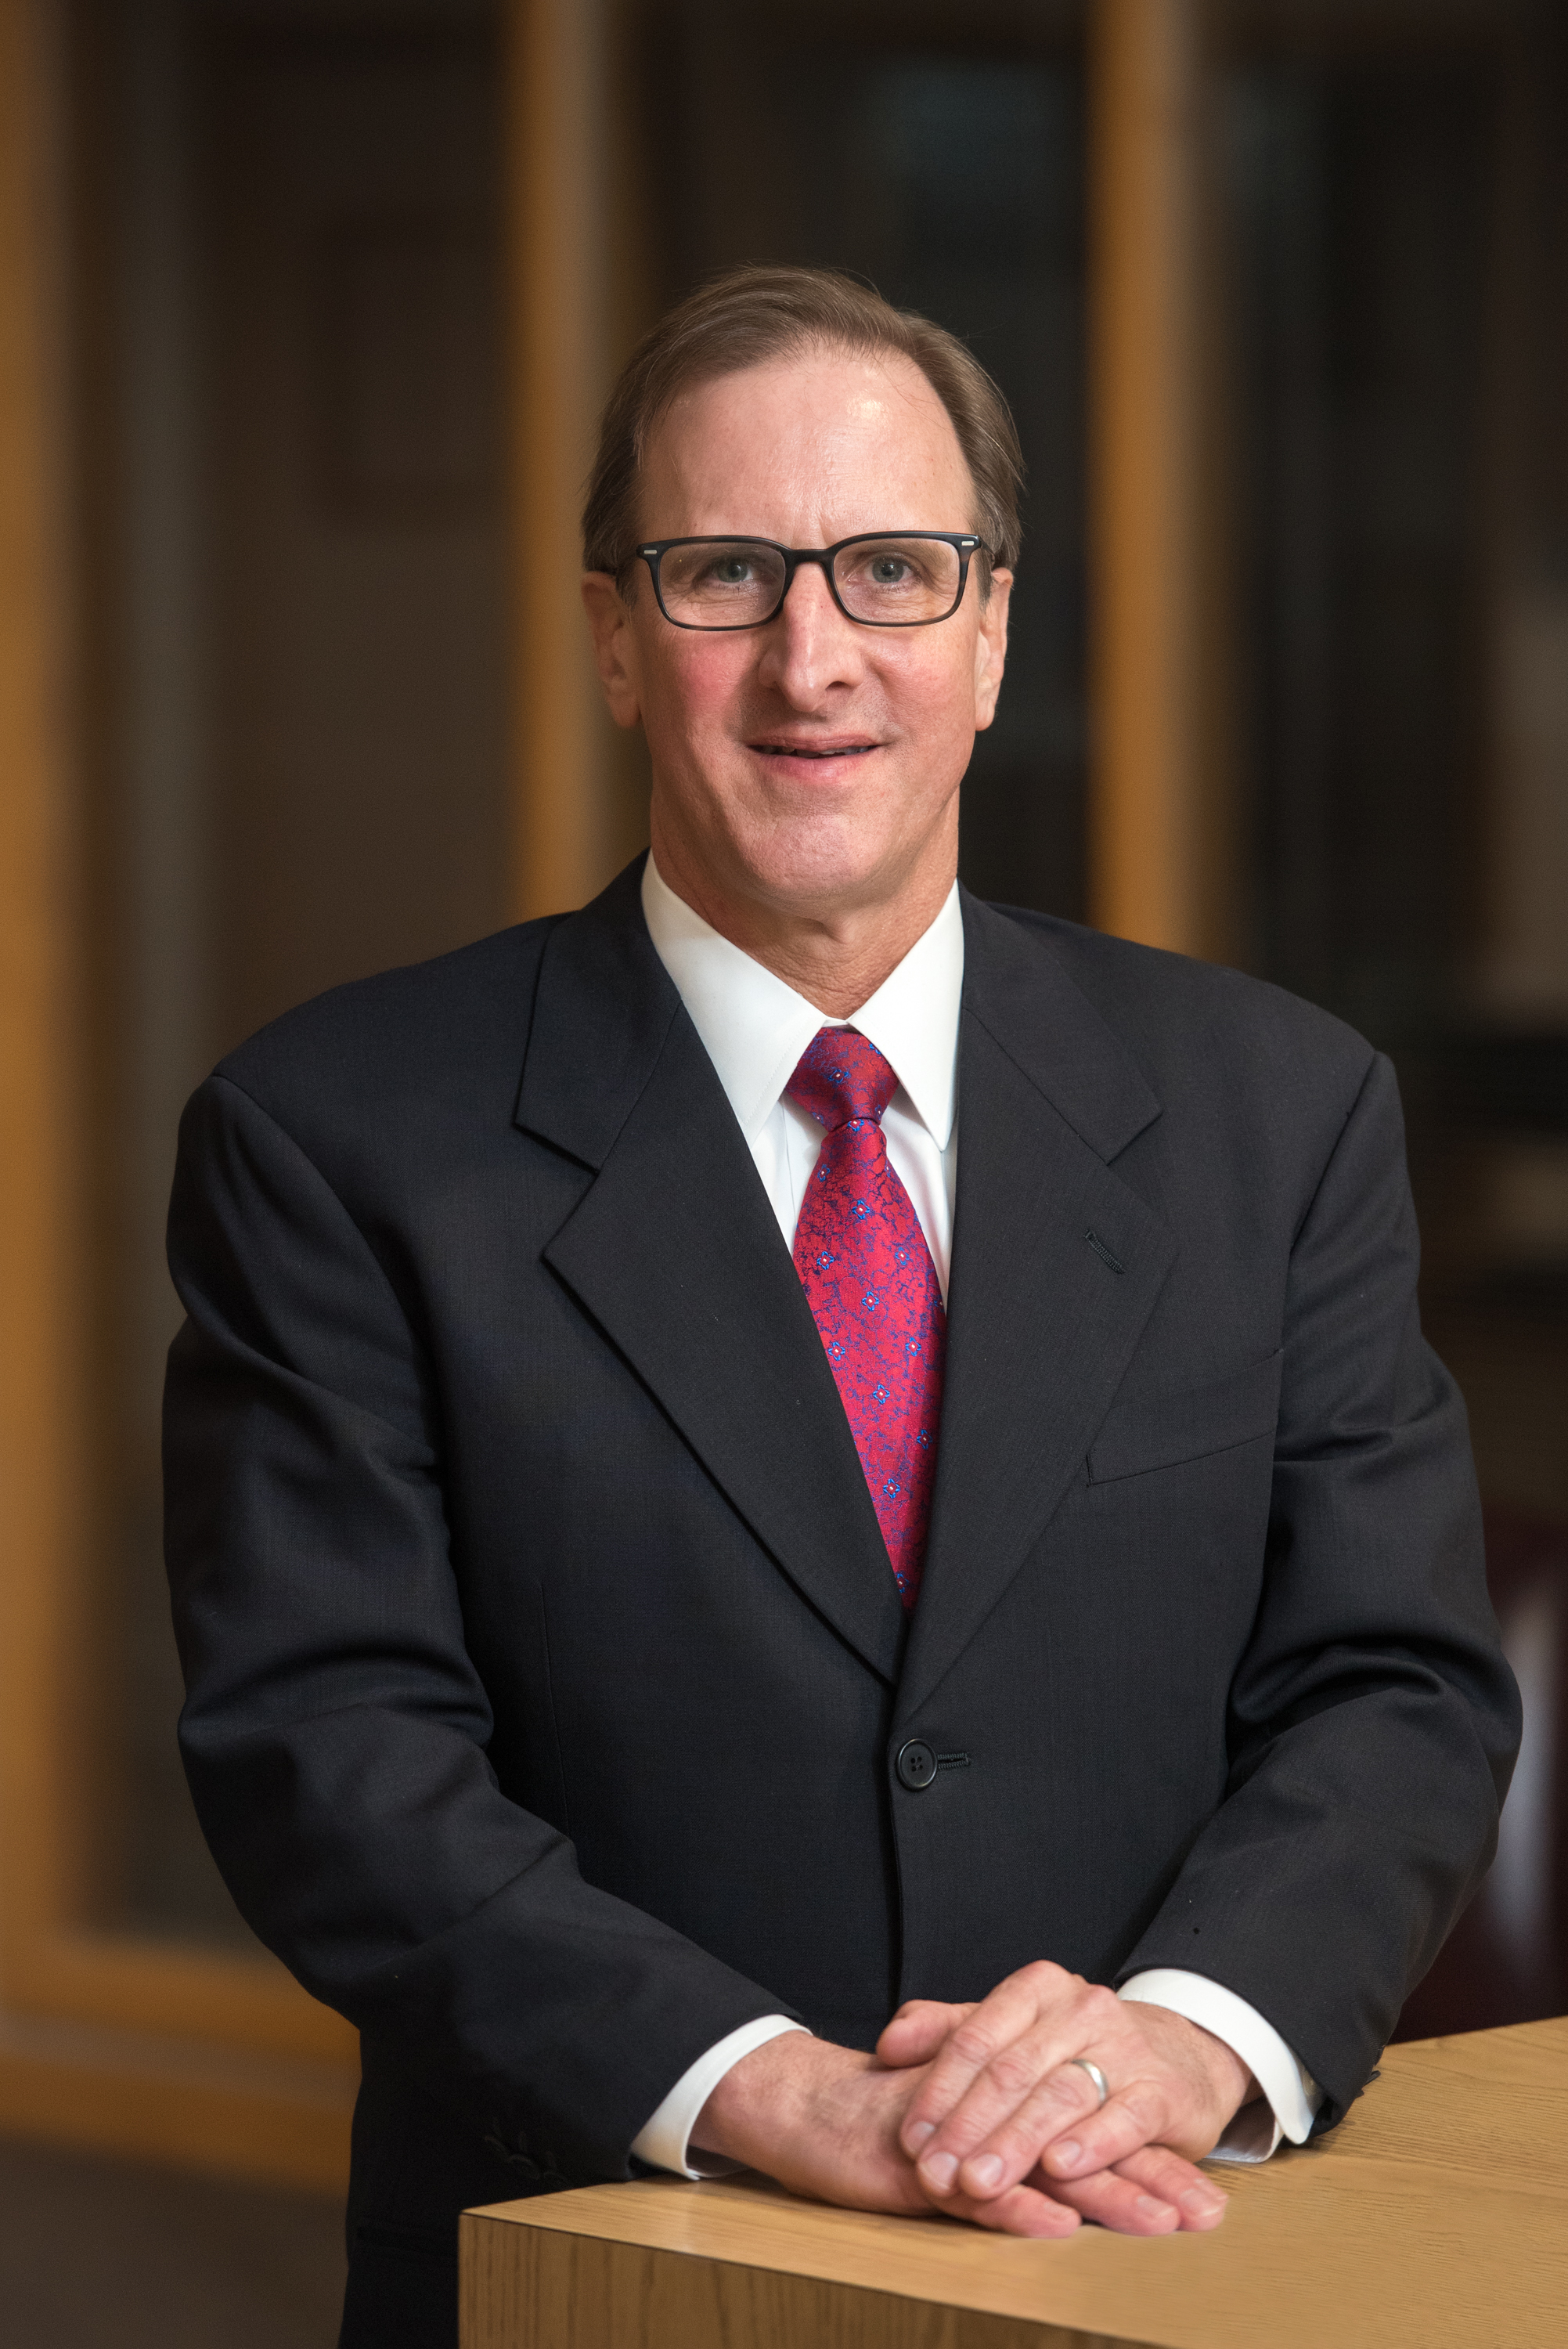 William A. Rhodehamel, President & CEO